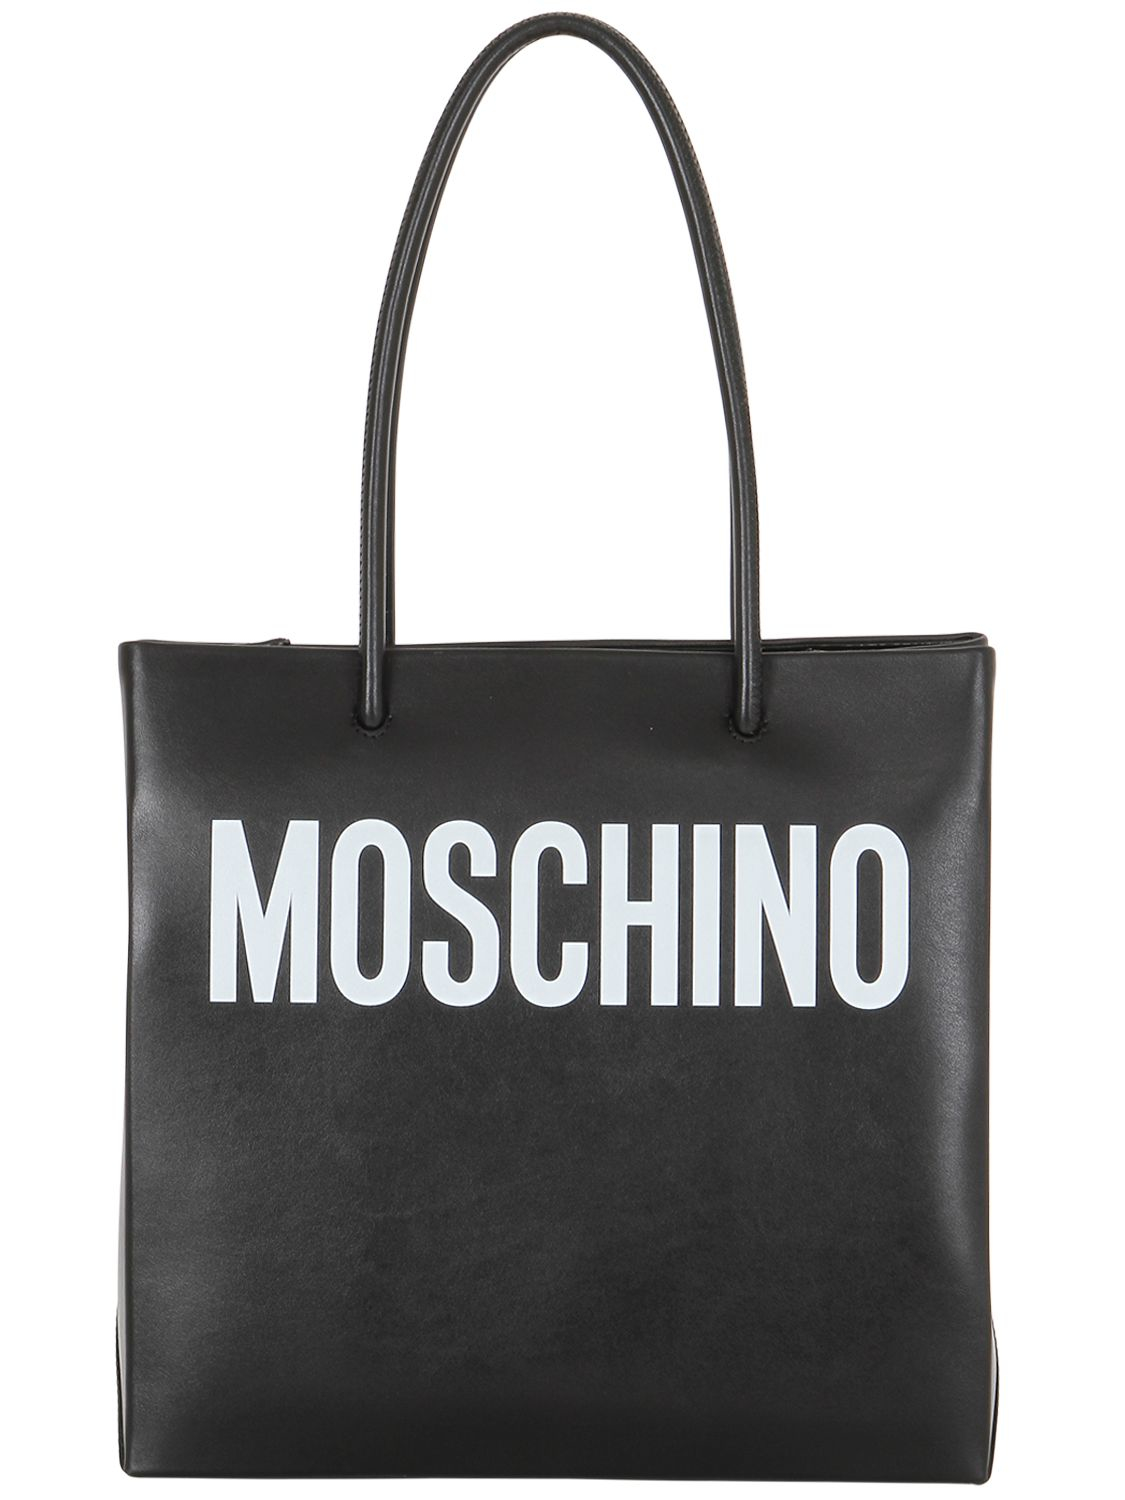 moschino logo shopping nappa leather tote in black lyst. Black Bedroom Furniture Sets. Home Design Ideas